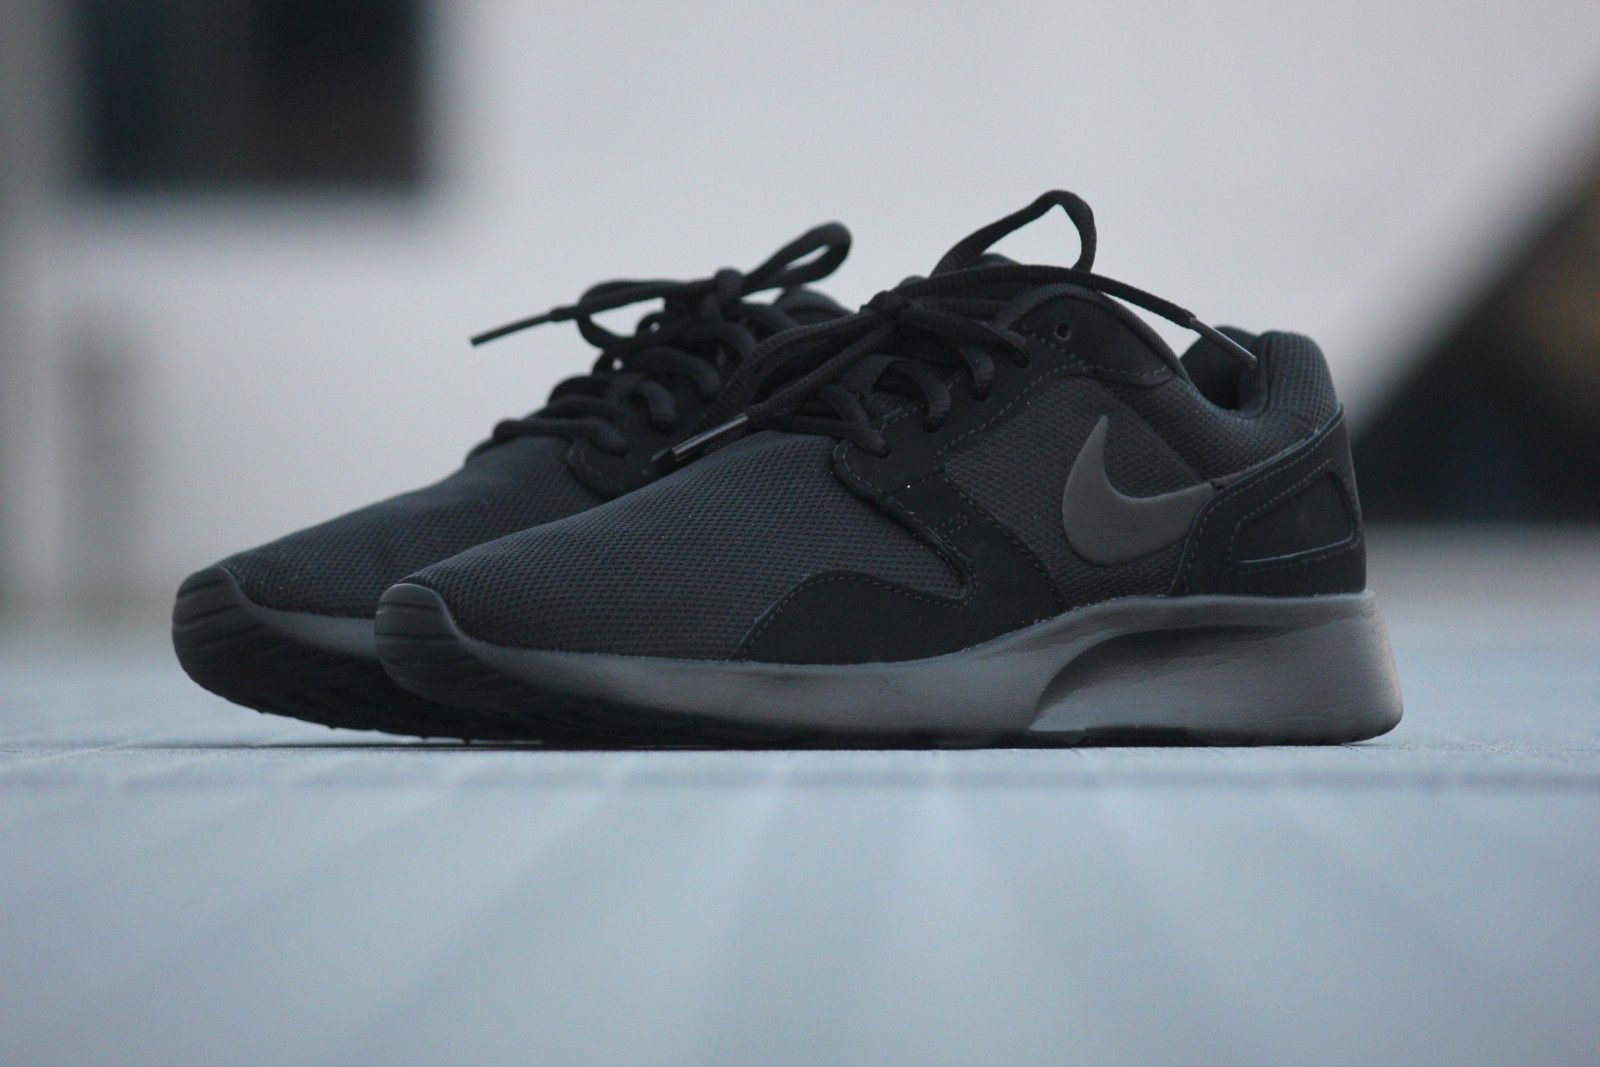 premium selection 2dfd7 93e5e Nike Kaishi All Black - 654473-090